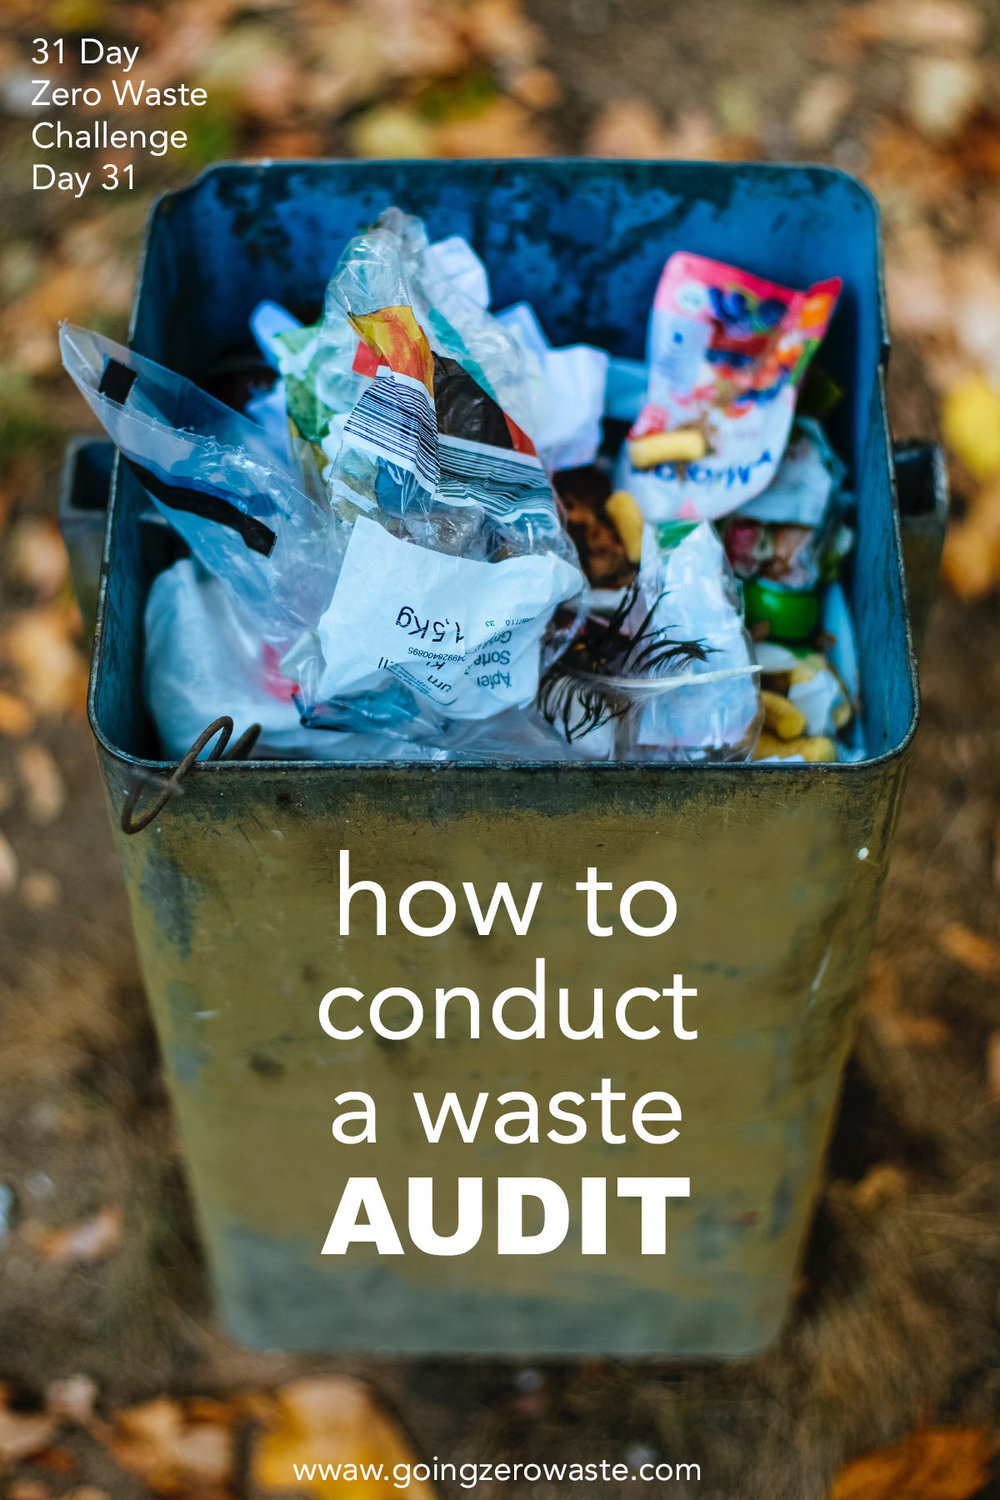 How to conduct waste audit from the 31 day zero waste challenge from www.goingzerowaste.com #zerowaste #zerowastechallenge #ecofriendly #wasteaudit